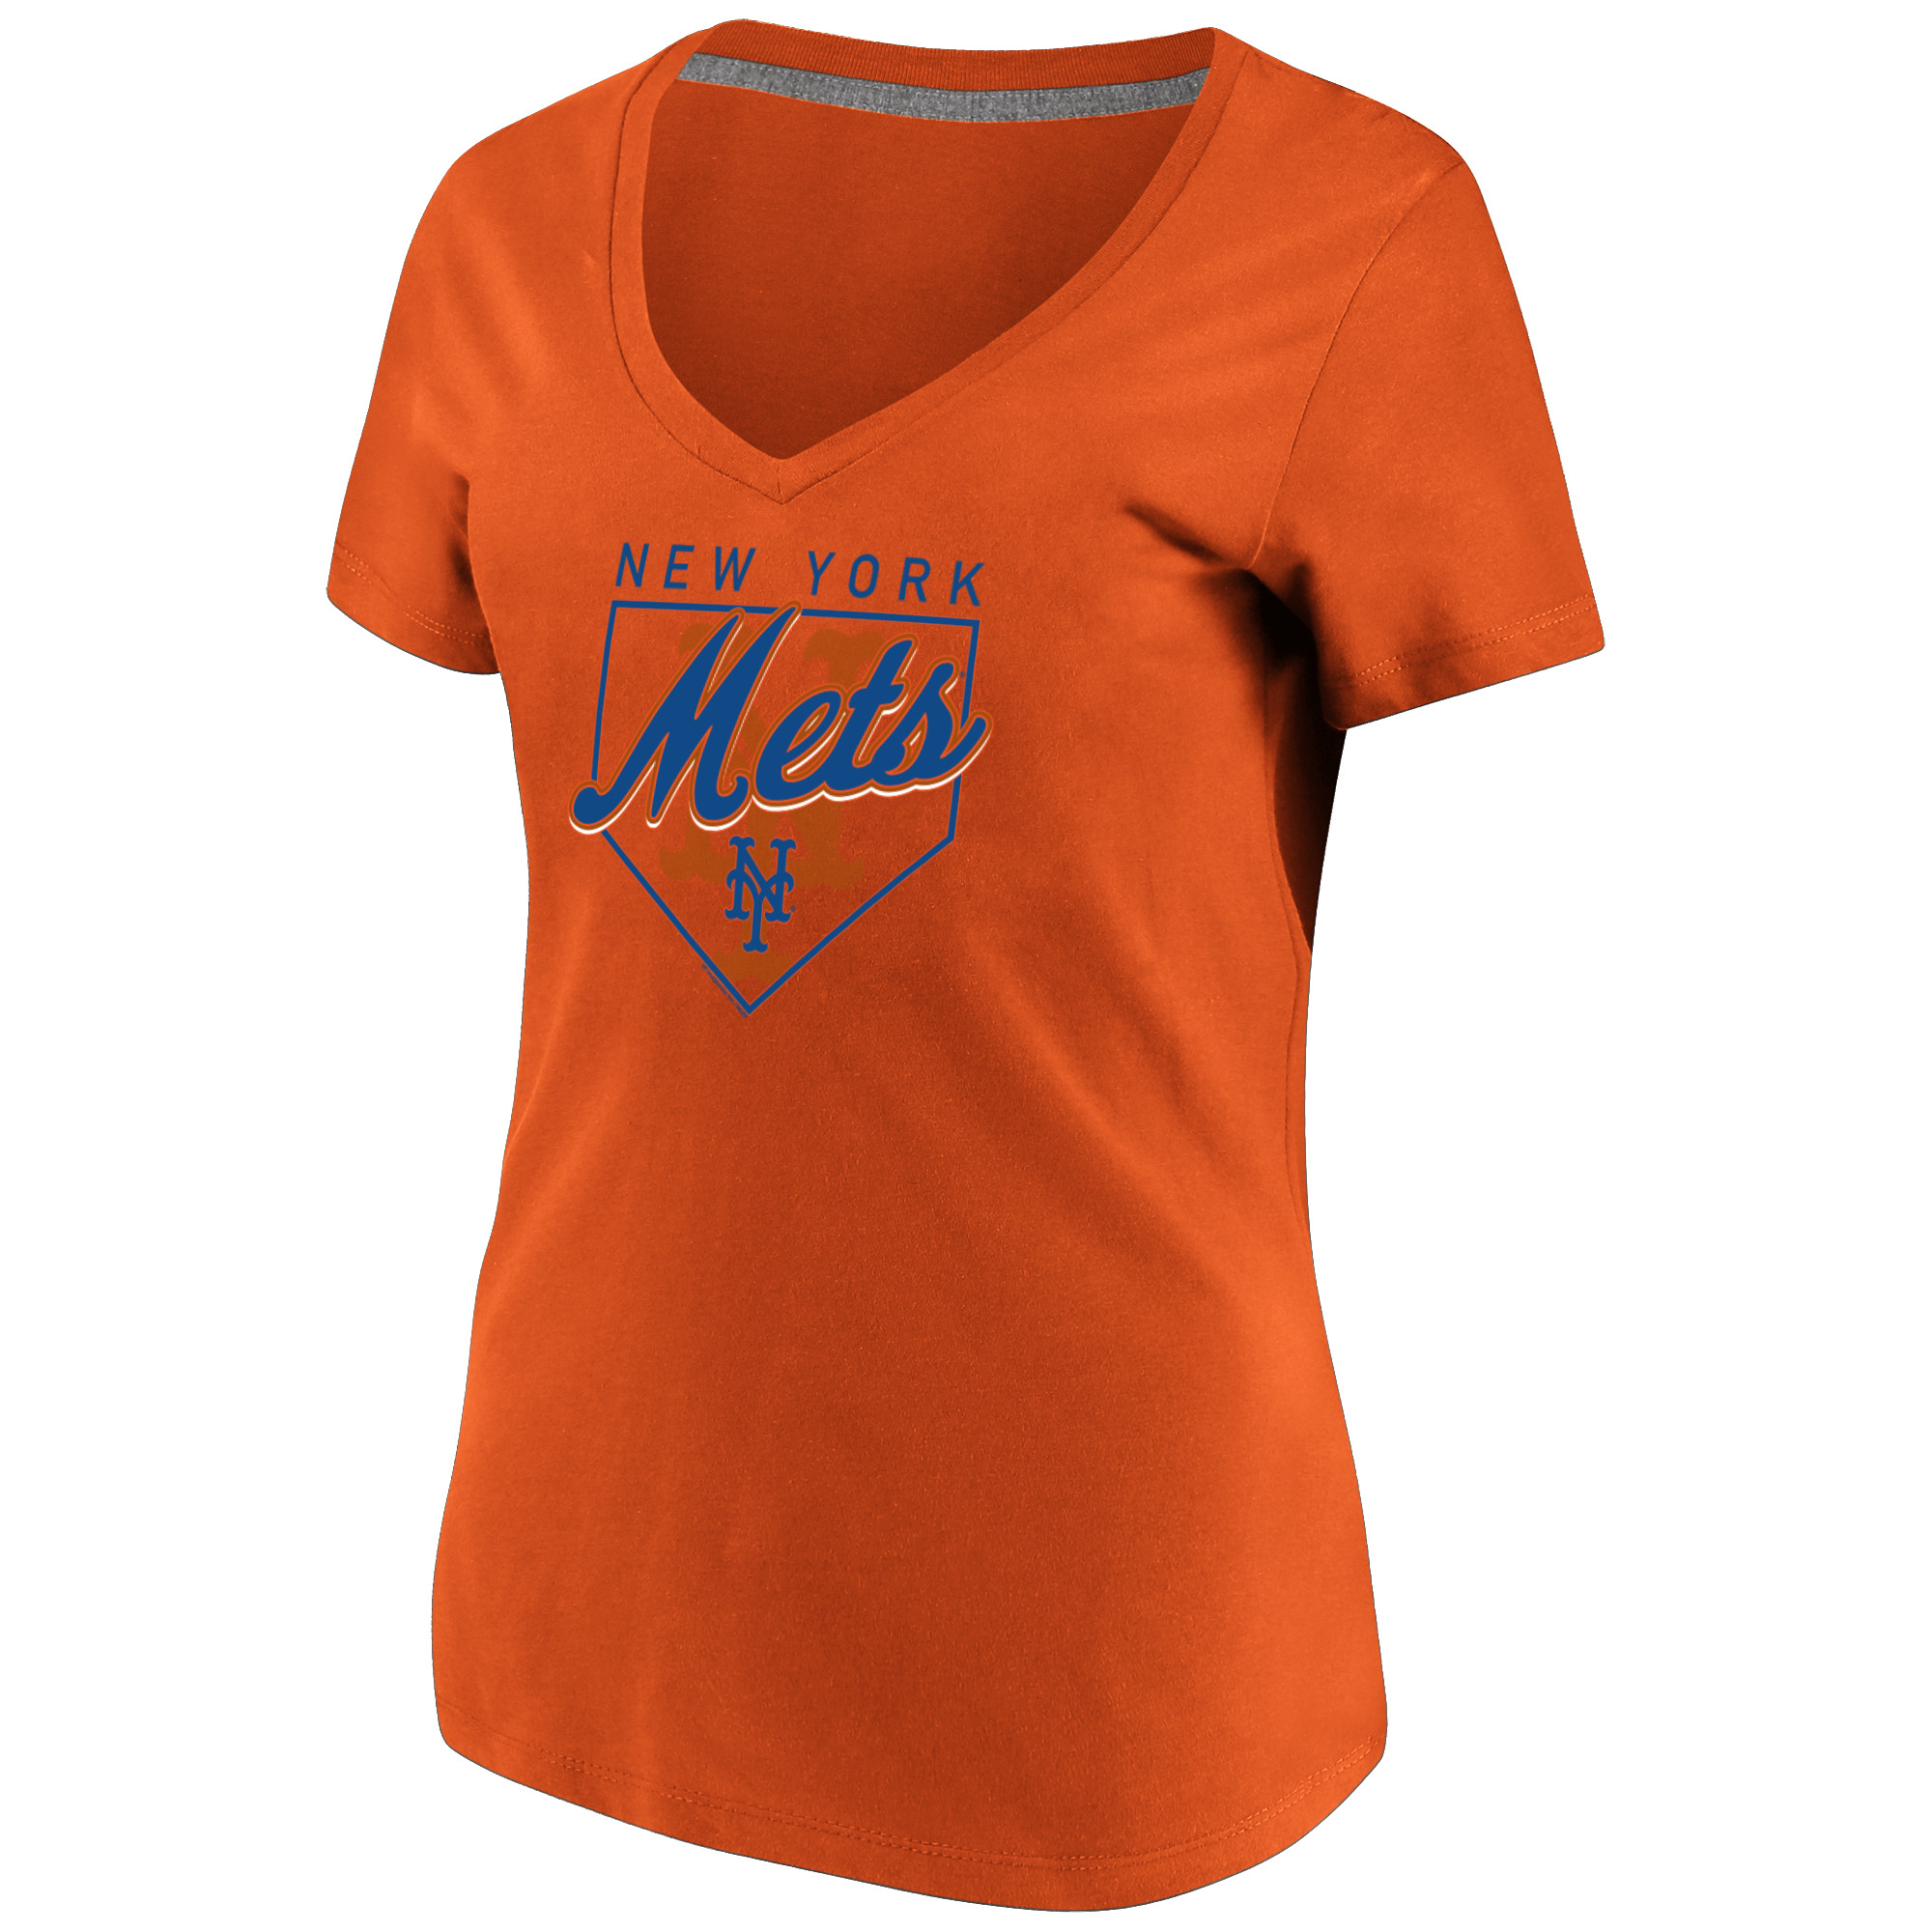 Women's Majestic Orange New York Mets Cling to the Lead V-Neck T-Shirt